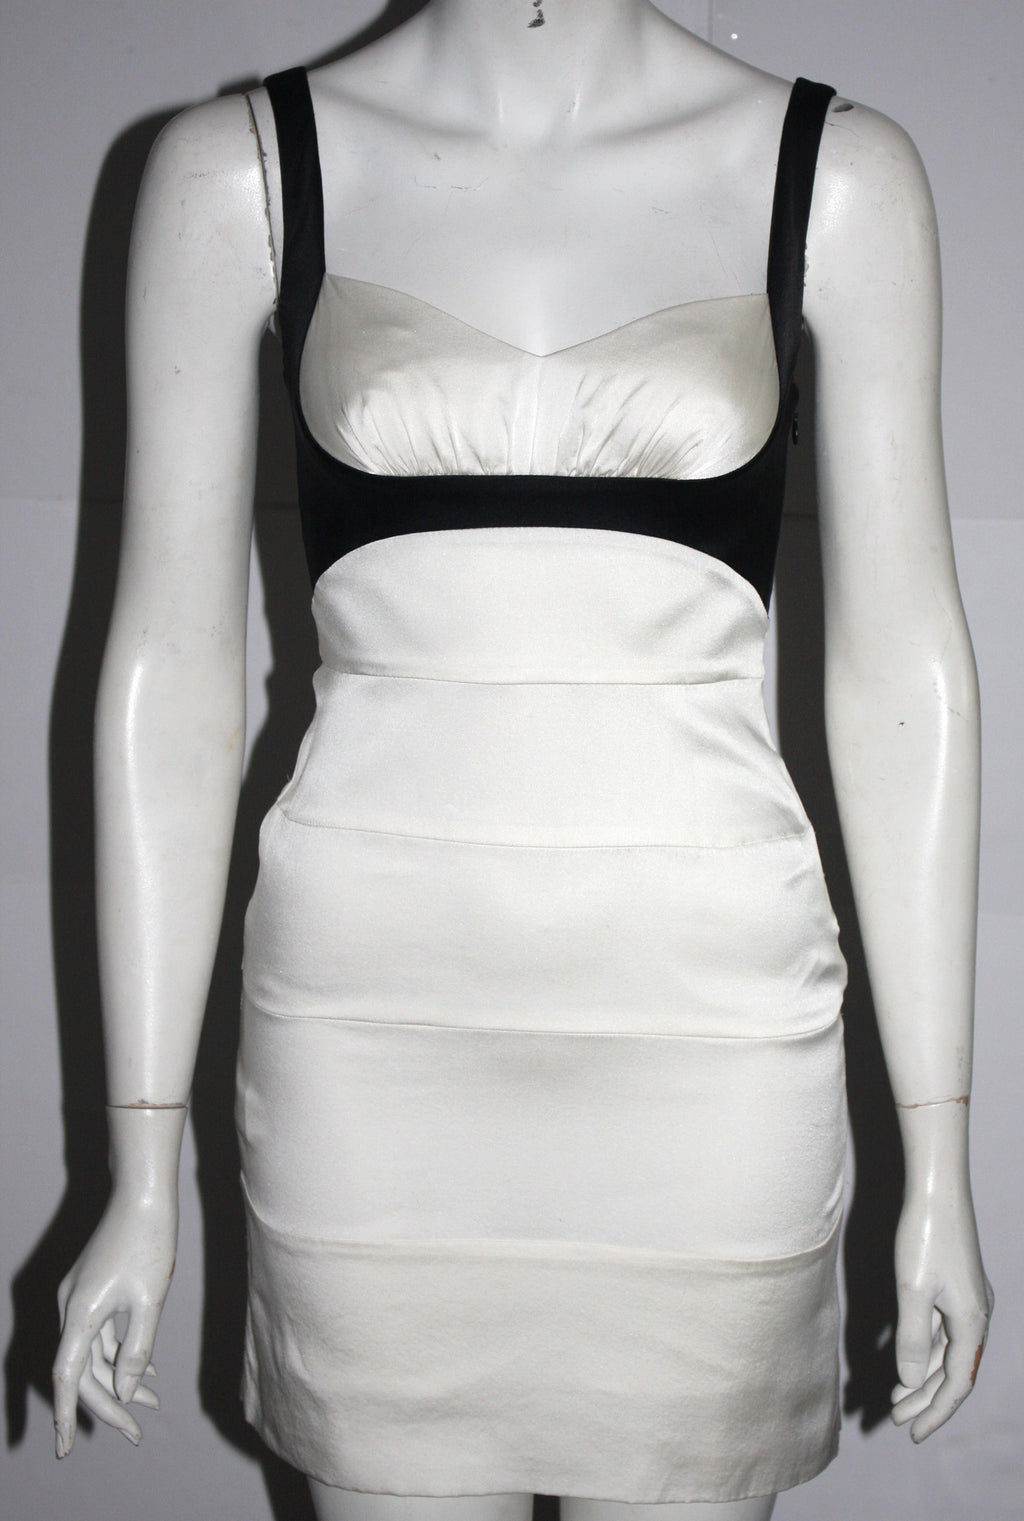 BCBG Max Azria Black & White Silk Dress - Joyce's Closet  - 1